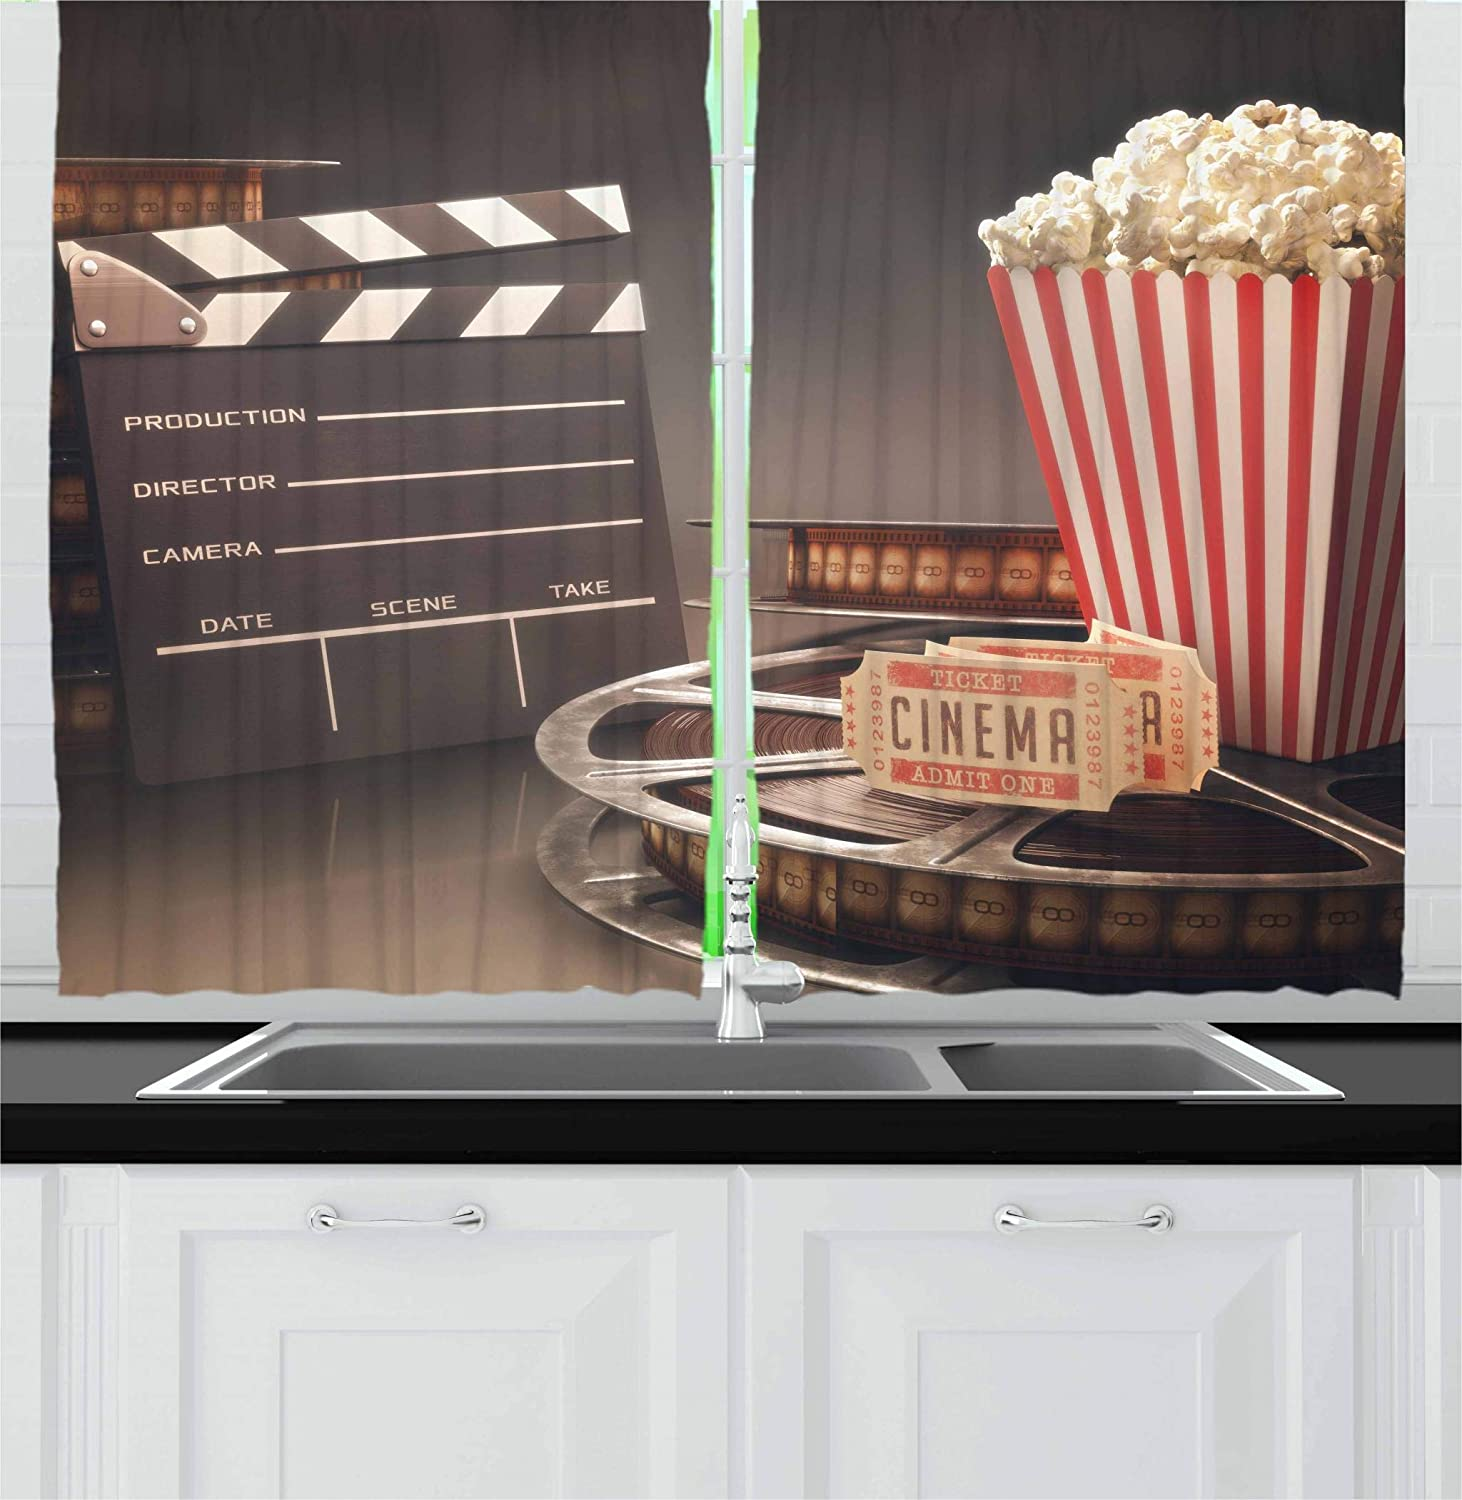 Amazon Com Ambesonne Movie Theater Kitchen Curtains Old Fashion Entertainment Objects Related To Cinema Film Reel Motion Picture Window Drapes 2 Panel Set For Kitchen Cafe Decor 55 X 39 Yellow White Home